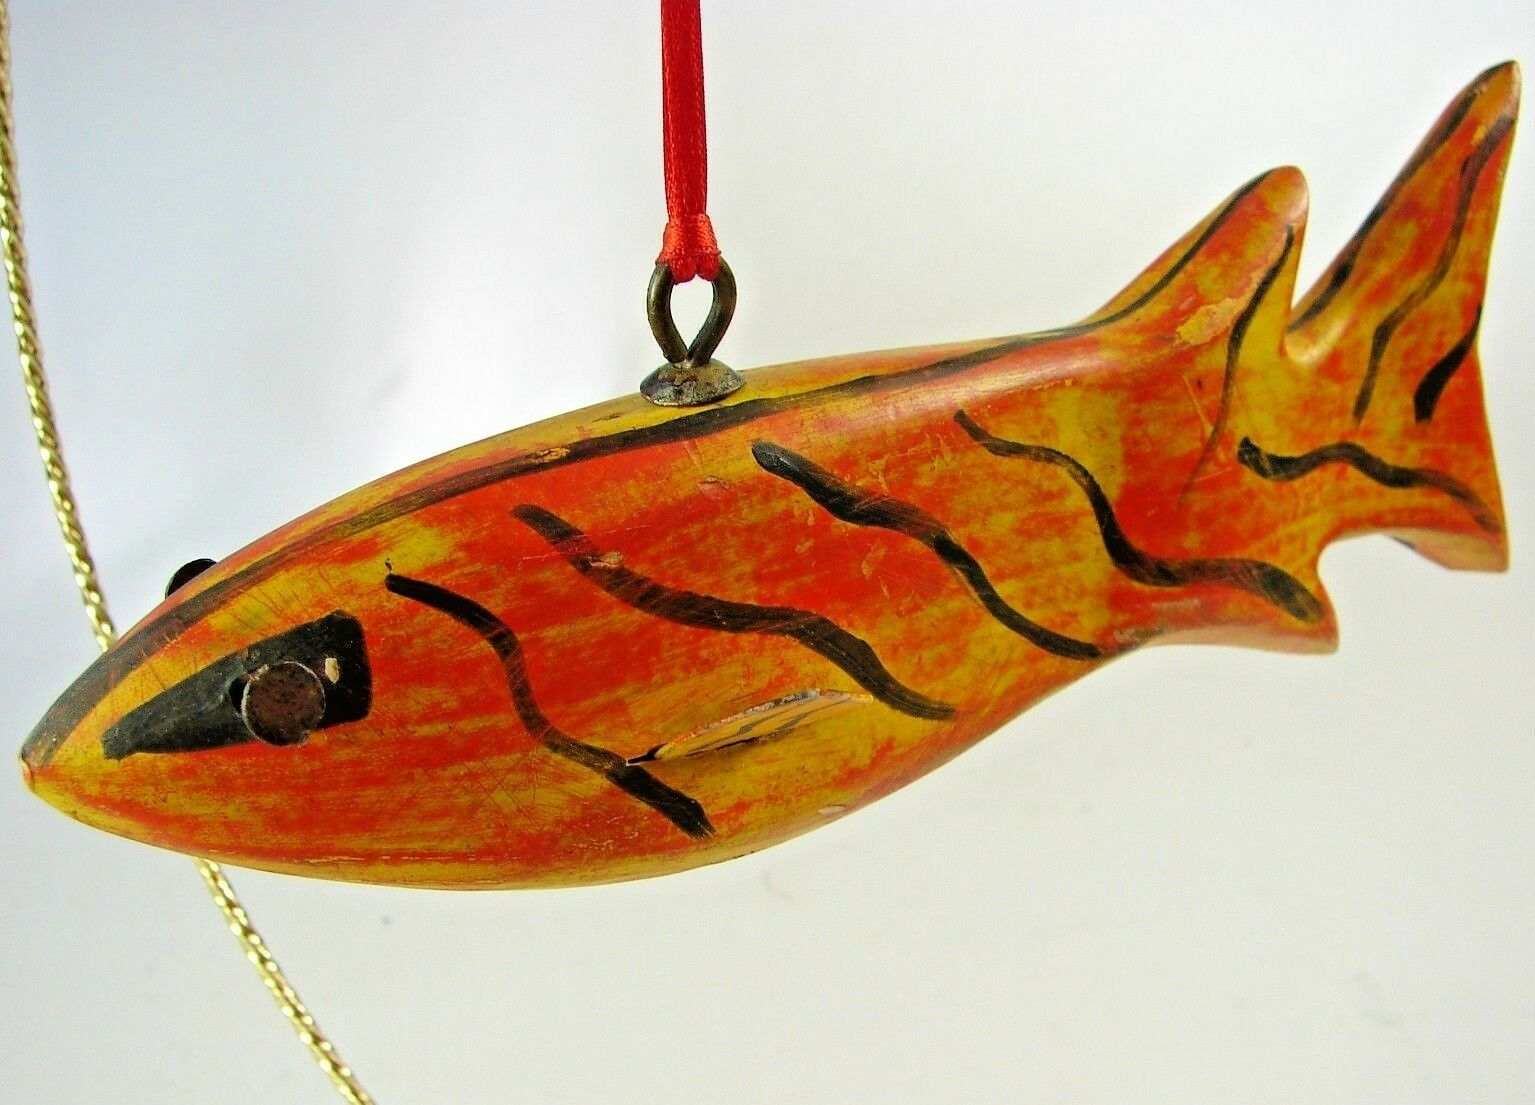 ICE  FISHING & SPEARING DECOY - Vintage North Central Working U.S. Folkart Lure  get the latest